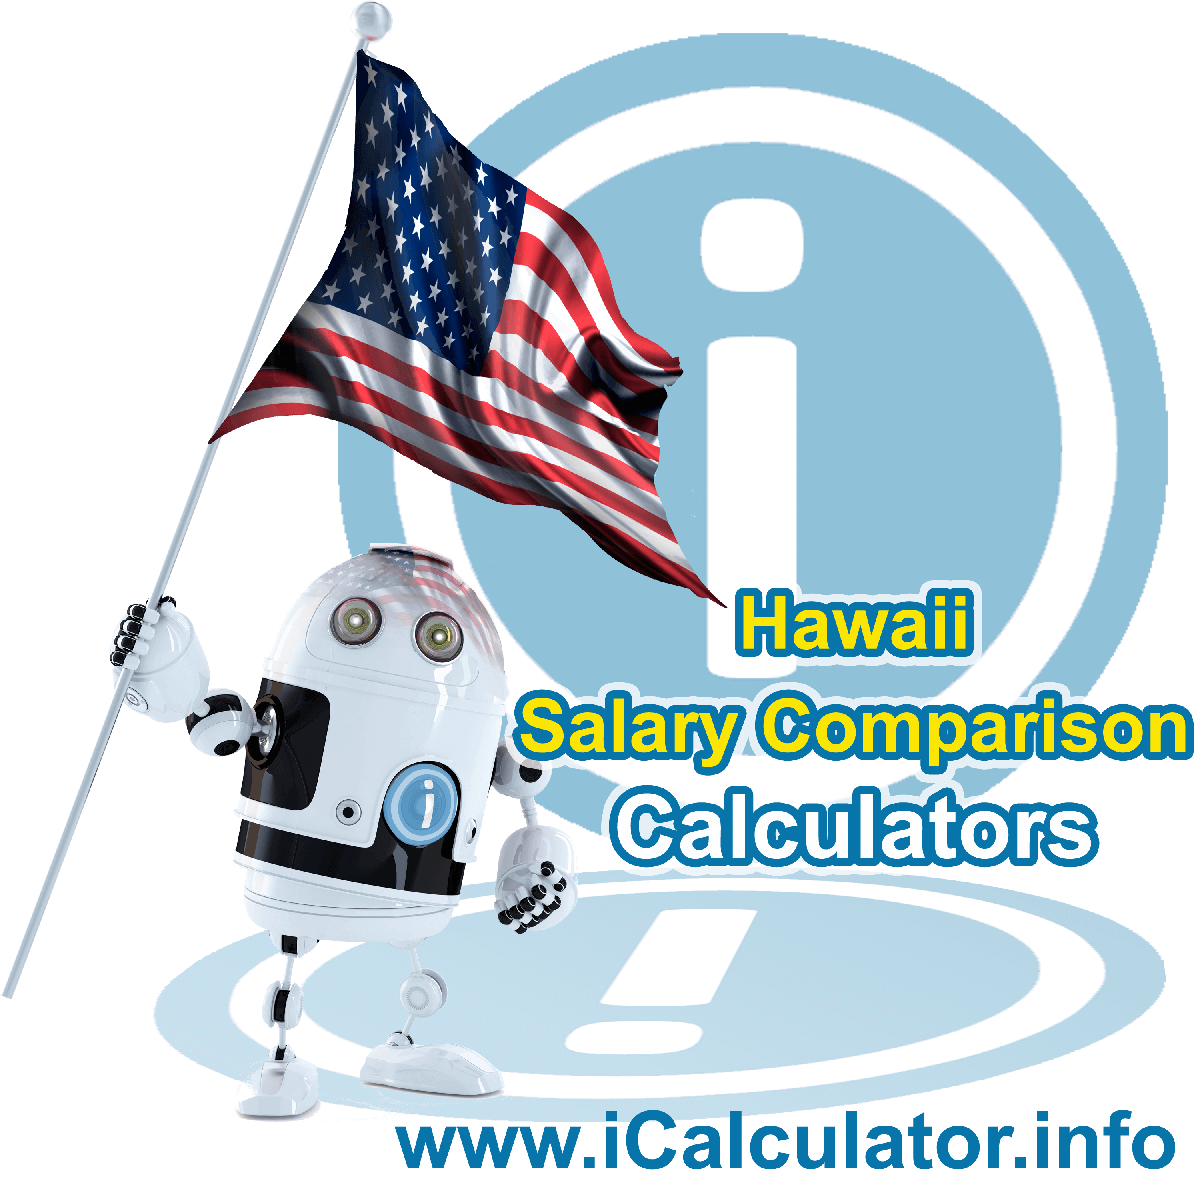 Hawaii Salary Comparison Calculator 2021 | iCalculator™ | The Hawaii Salary Comparison Calculator allows you to quickly calculate and compare upto 6 salaries in Hawaii or between other states for the 2021 tax year and historical tax years. Its an excellent tool for jobseekers, pay raise comparison and comparison of salaries between different US States